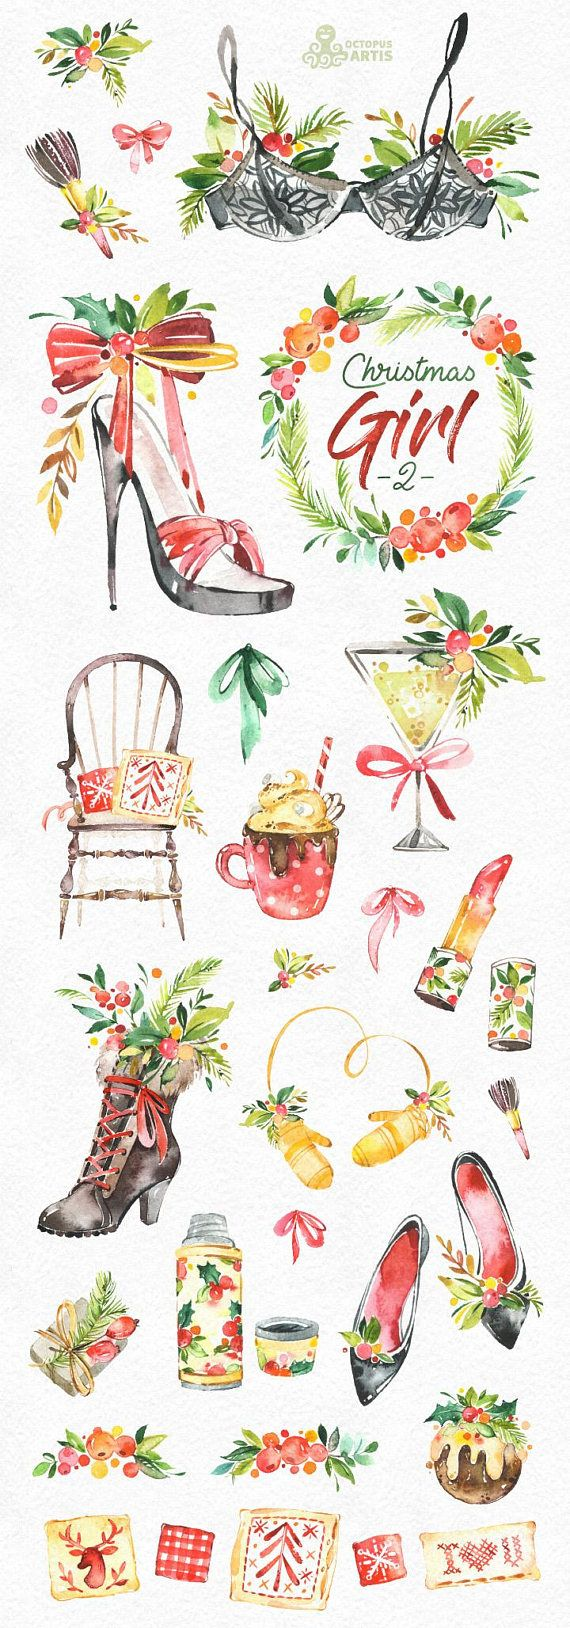 This Christmas Girl set of 35 high quality hand painted watercolor graphics. Perfect graphic for Christmas project, greeting cards, photos, posters, quotes and more.  -----------------------------------------------------------------  INSTANT DOWNLOAD Once payment is cleared, you can download your files directly from your Etsy account.  -----------------------------------------------------------------  This listing includes:  35 x Images in PNG with transparent background, different size…